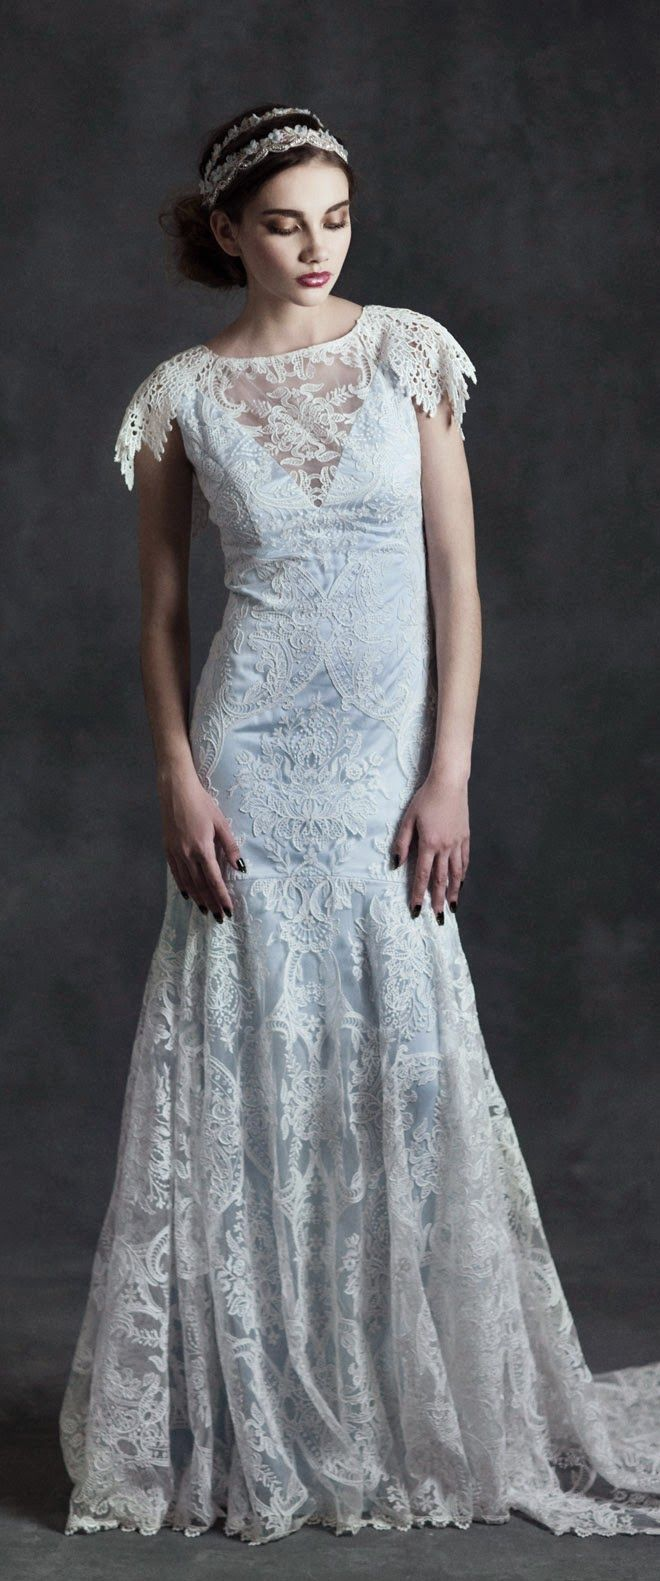 Claire Pettibone Raphaella wedding gown sample sale | SAMPLE SALE ...